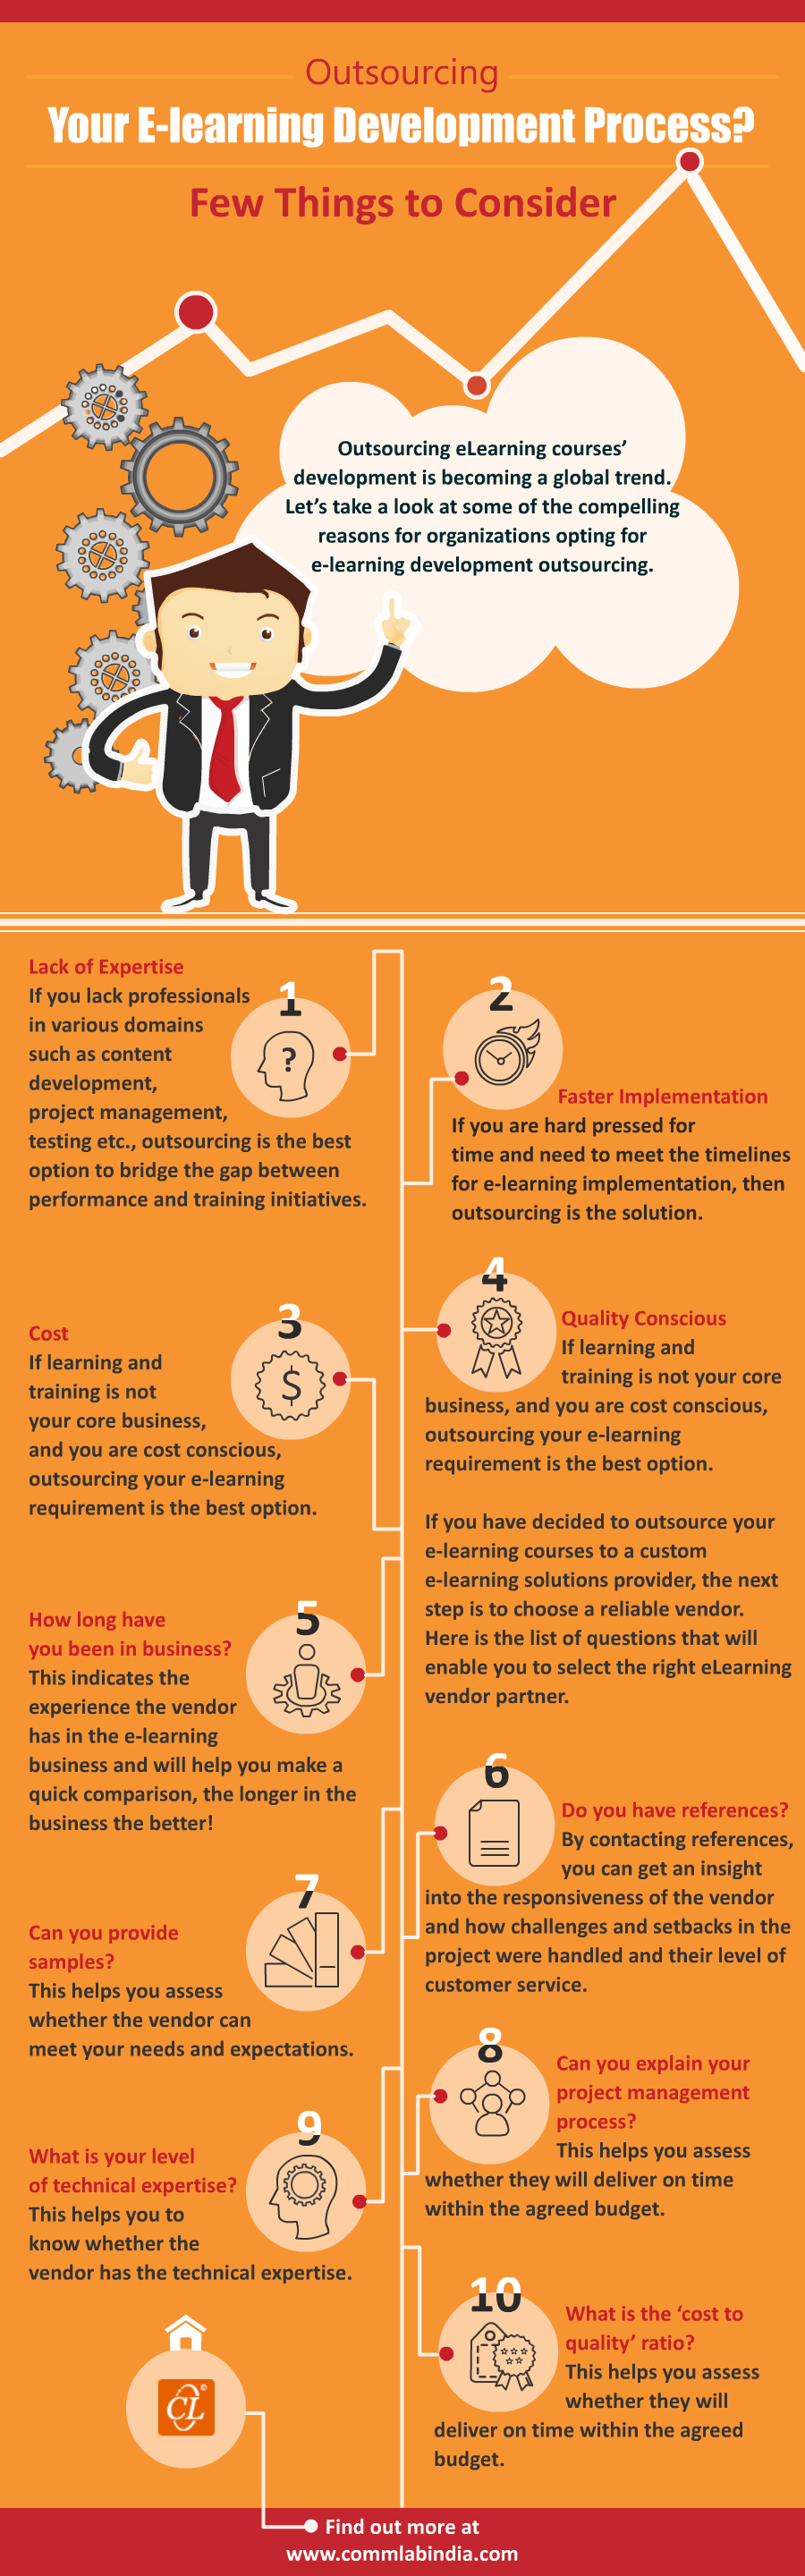 Outsourcing E-learning Development Process? A Few Things to Consider [Infographic]